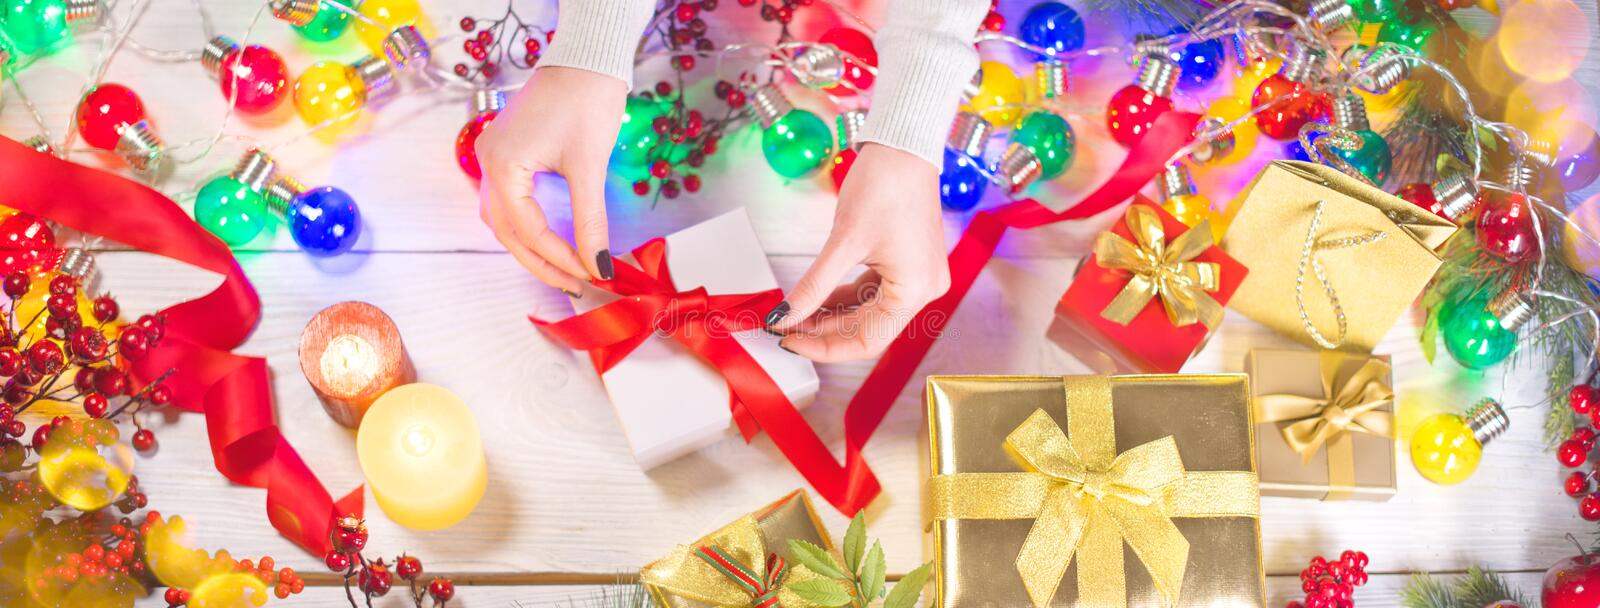 Christmas holiday scene. Person wrapping gift boxes on Xmas wooden background. Winter holiday backdrop stock photo